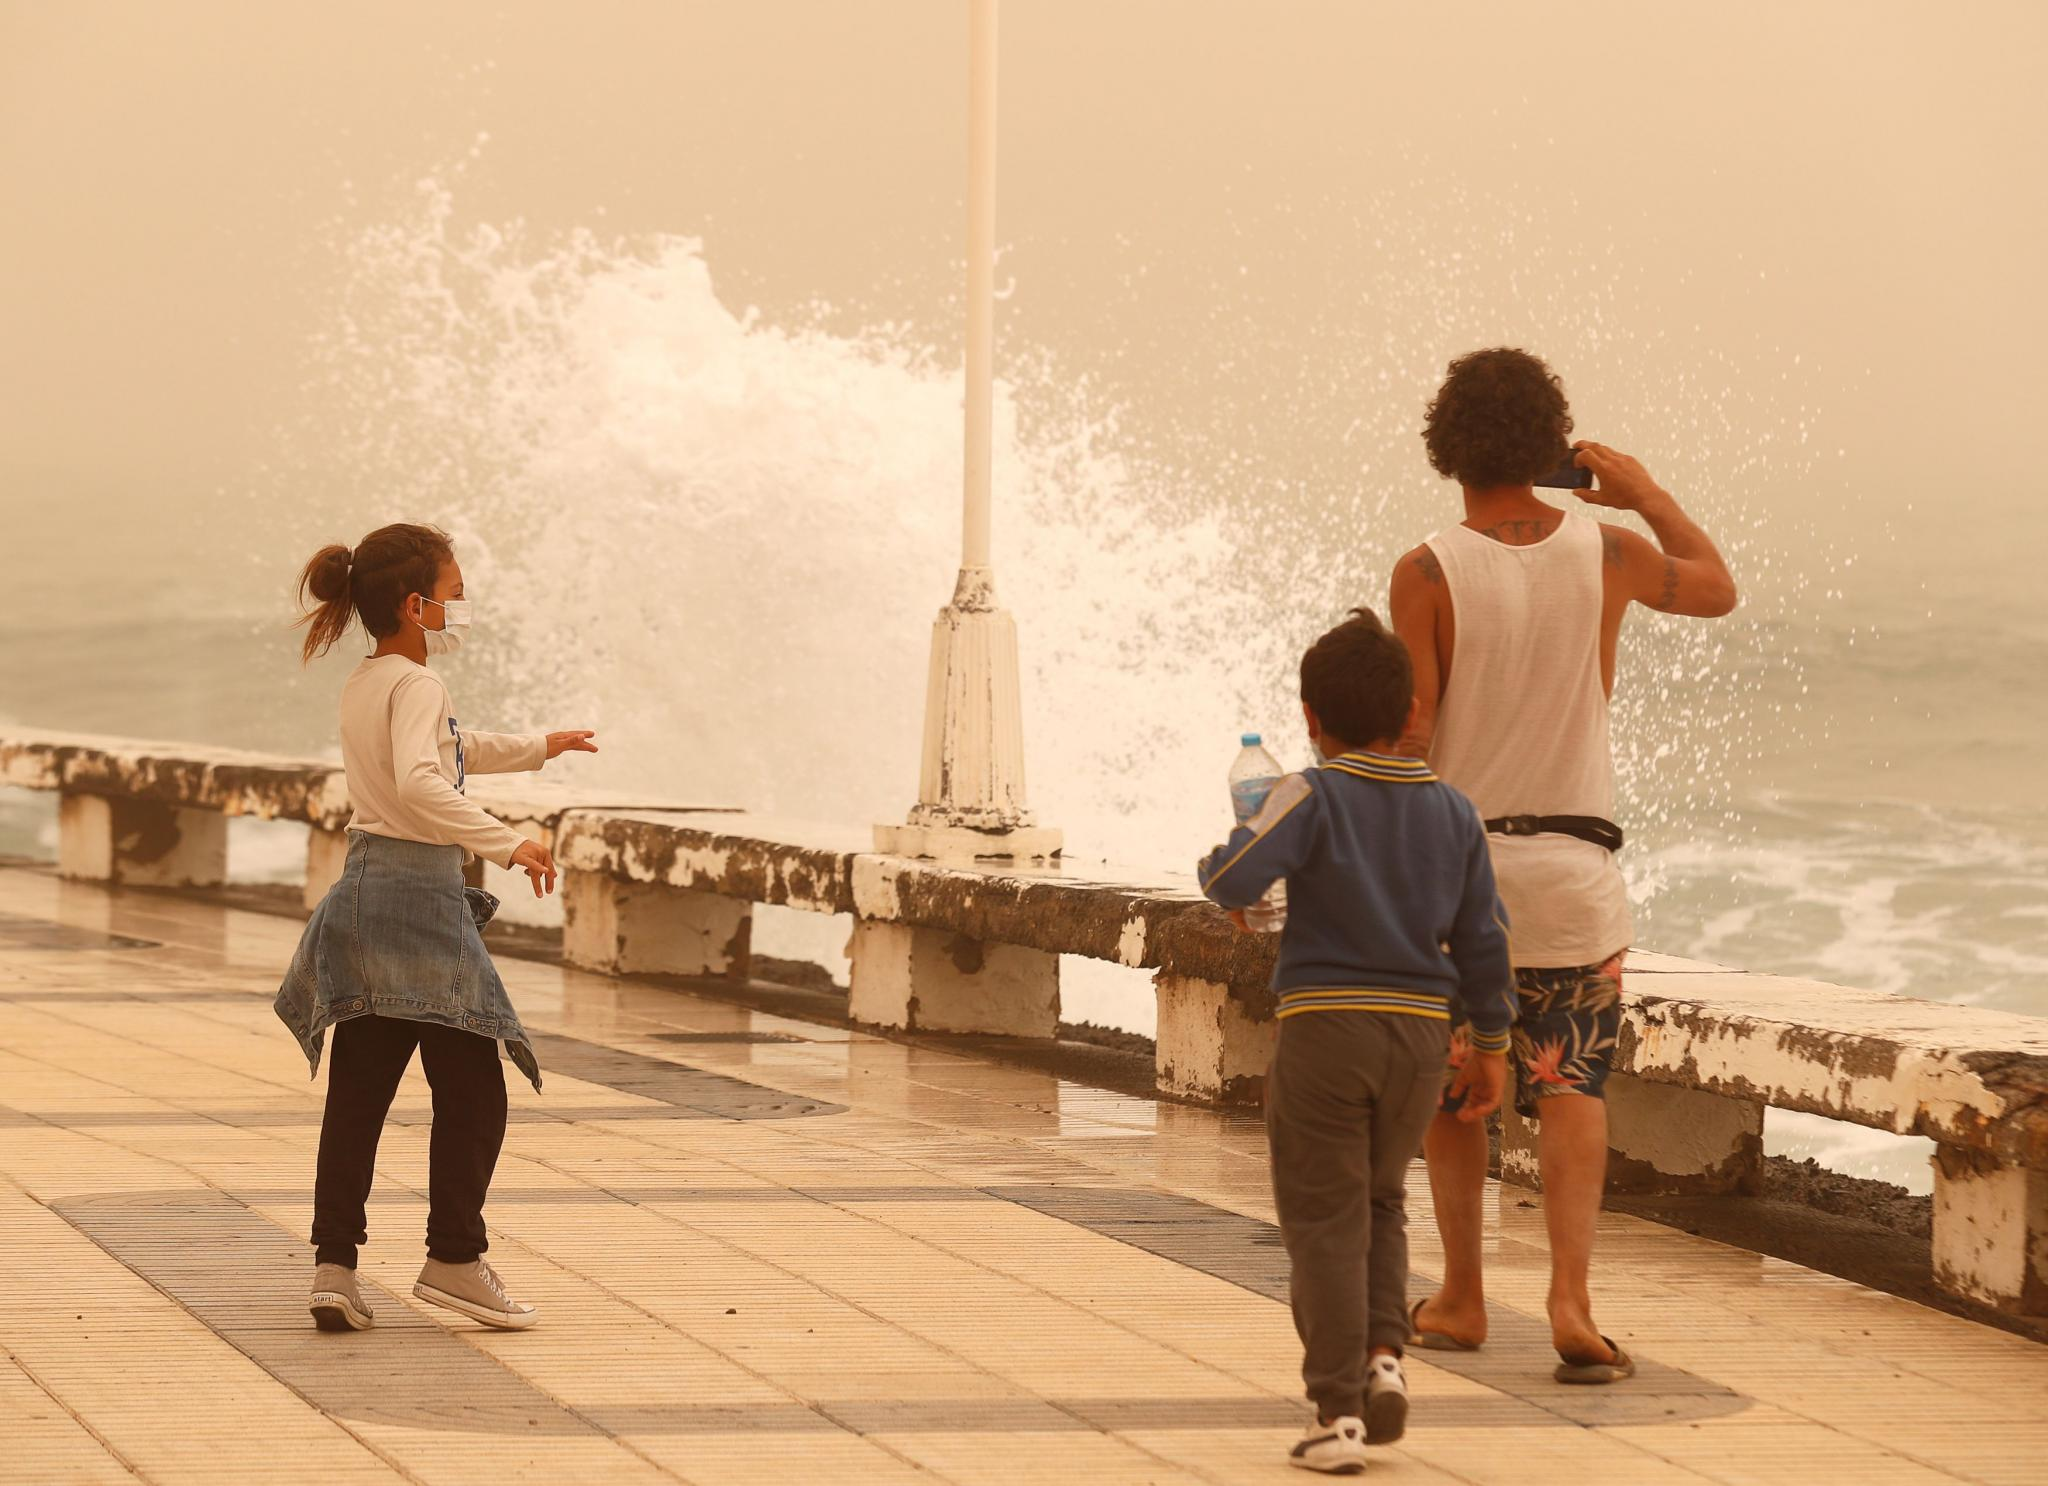 """A family watches the waves during a sandstorm locally known as """"calima"""" in the Canary Islands, Gran Canaria"""